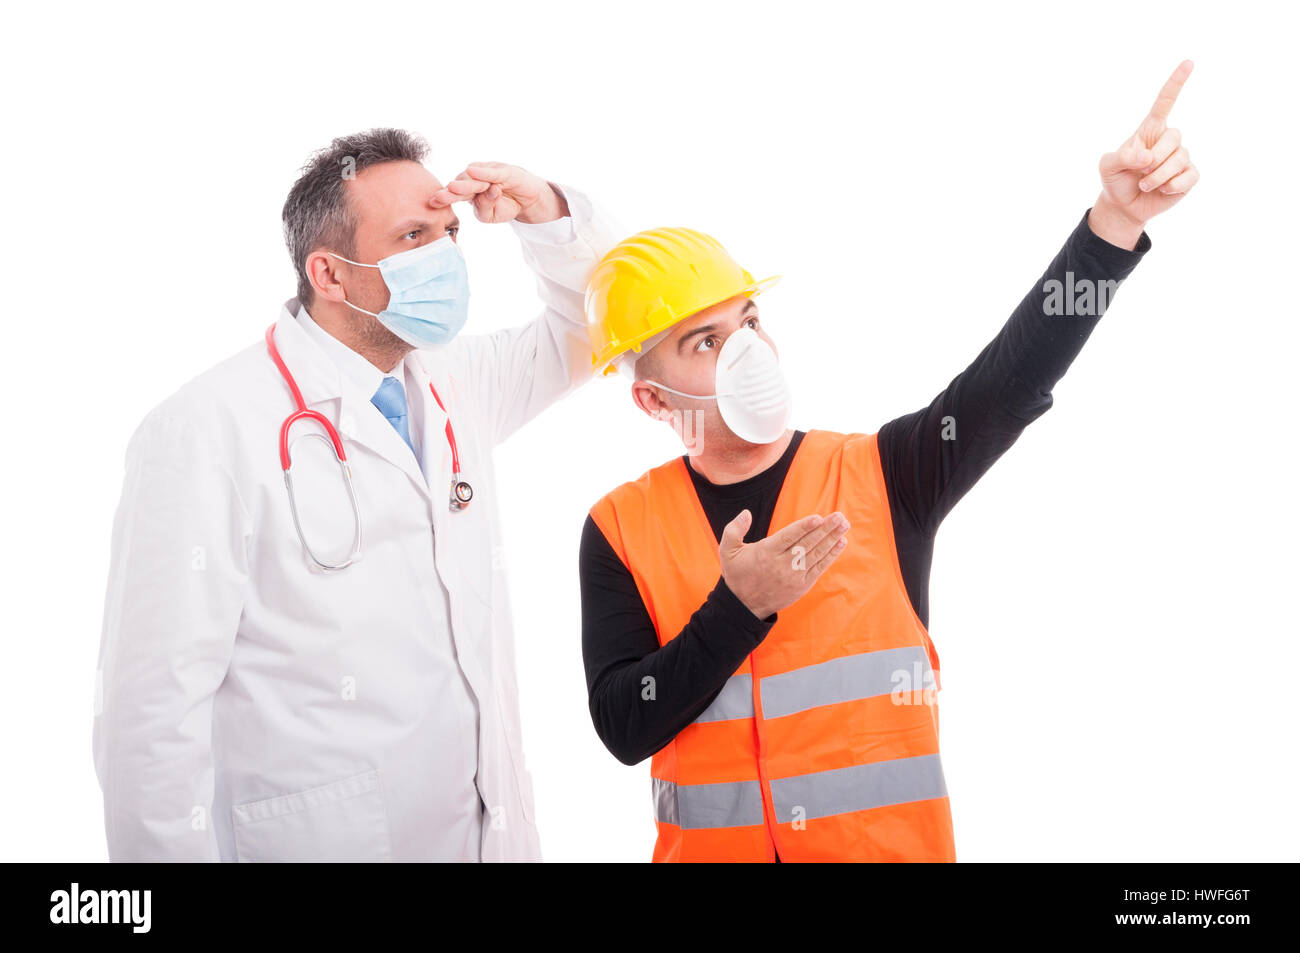 Constructor showing far away something at doctor isolated on white background Stock Photo